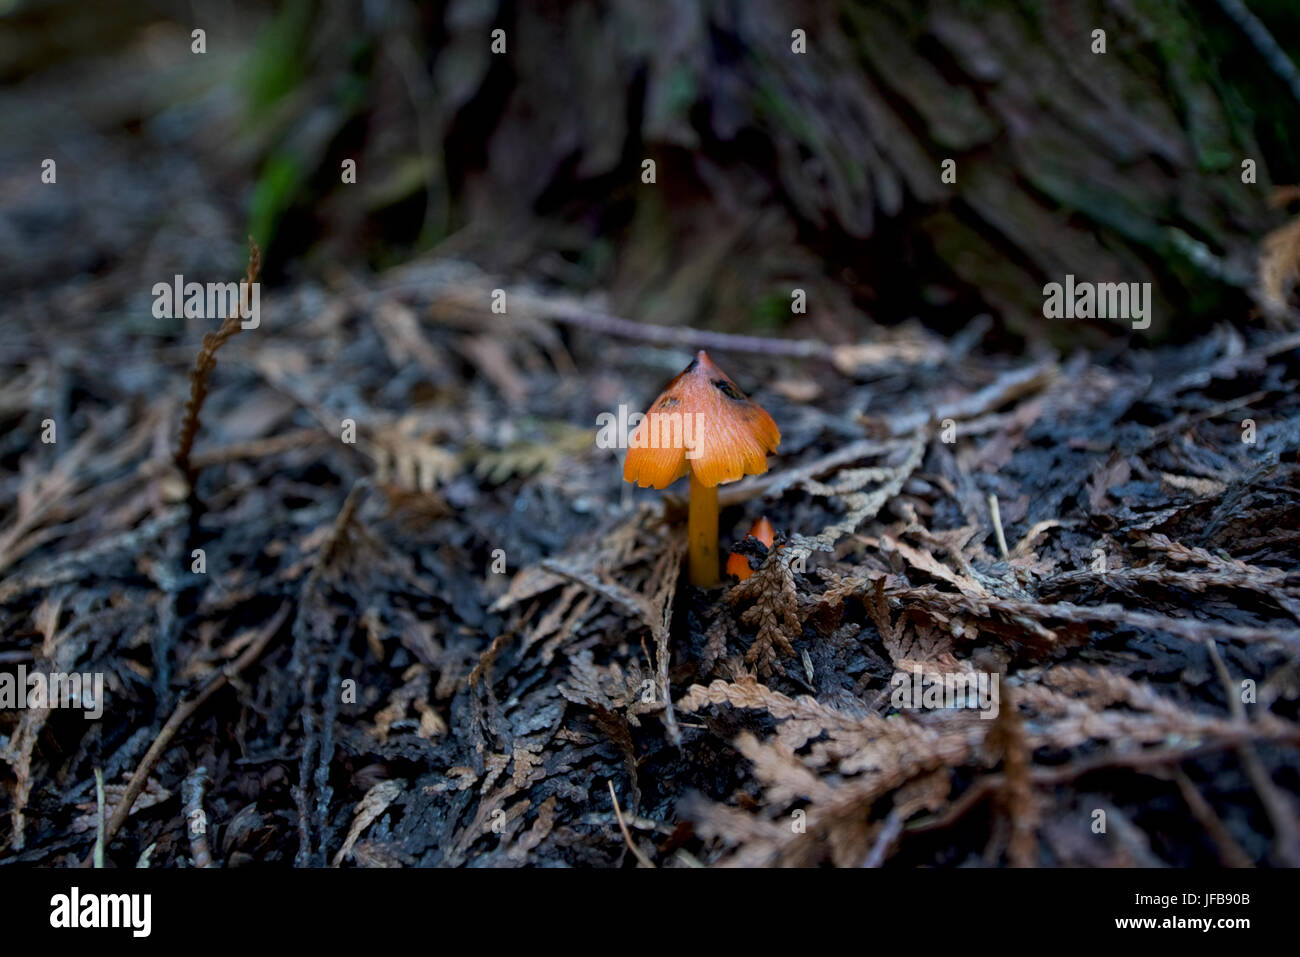 Small, orange, mushroom on the forest floor on Norway's southern coast, near Larvik. - Stock Image